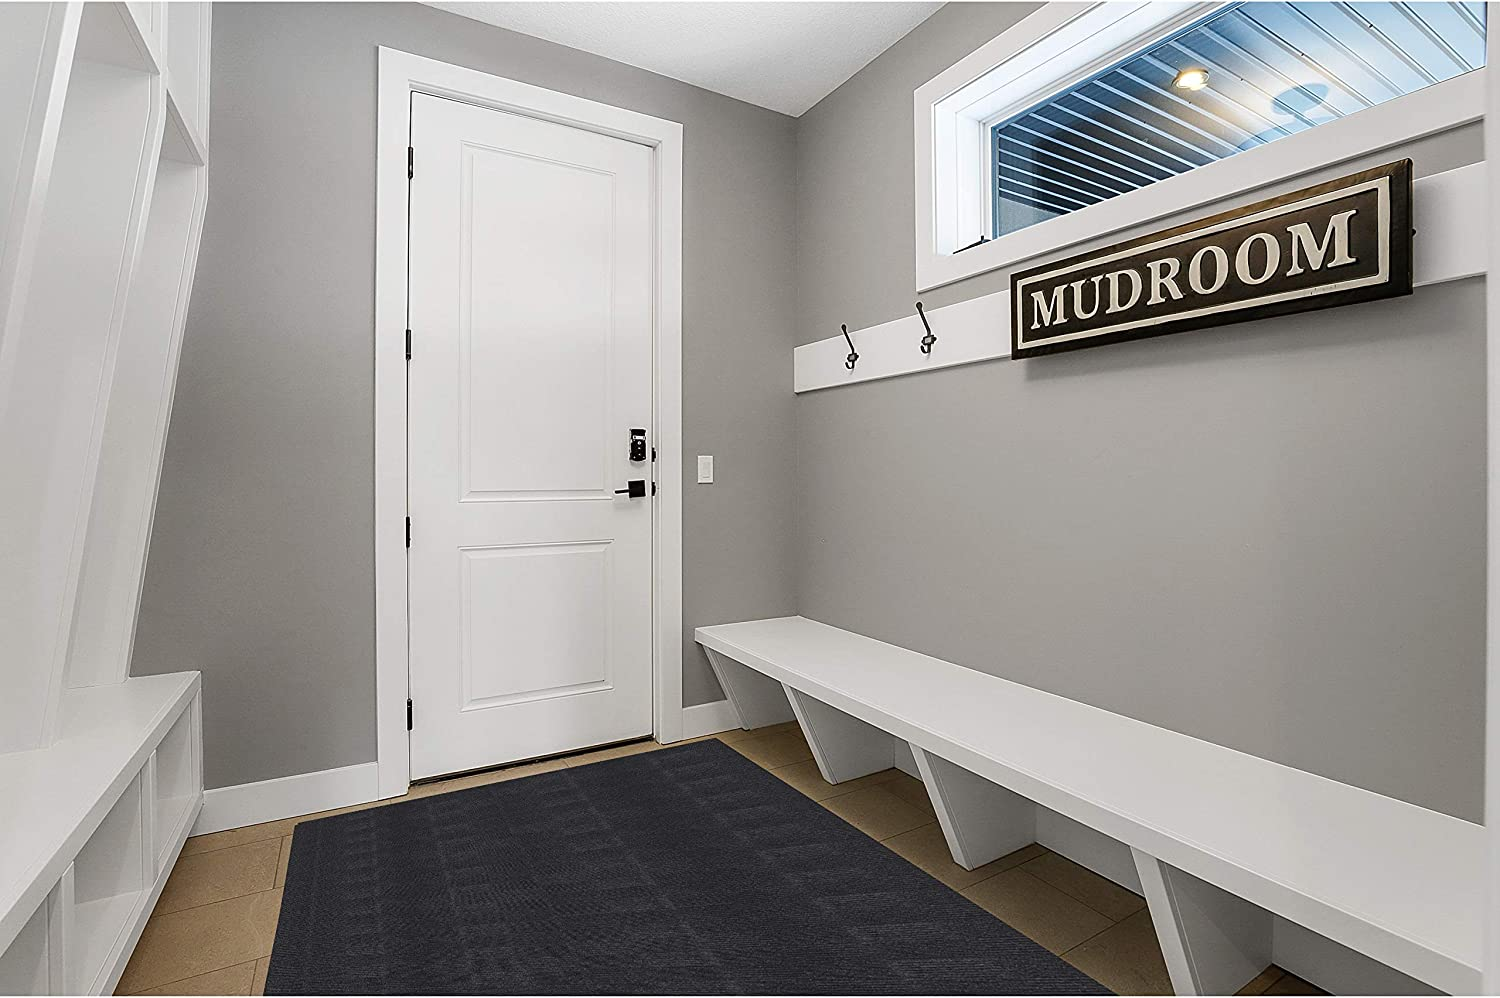 Mudroom Runner Rug Adhesive-Backed 3' x Non Low Slip Max 58% OFF Prof Online limited product 5' -